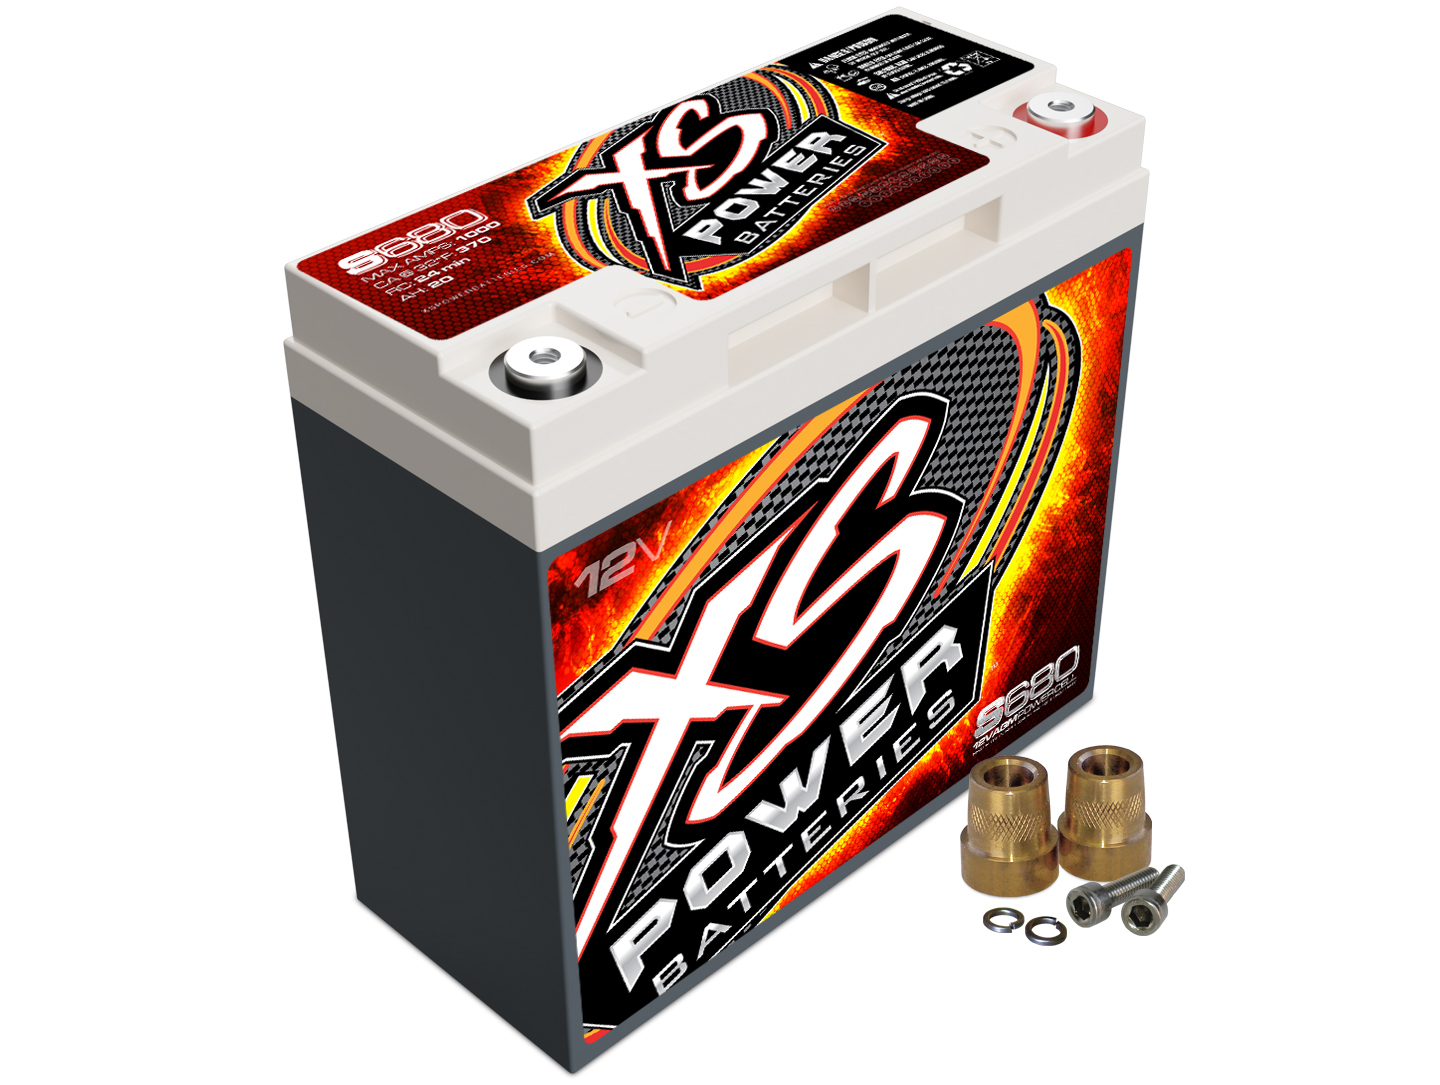 XS Power AGM Battery 12V 300A CA